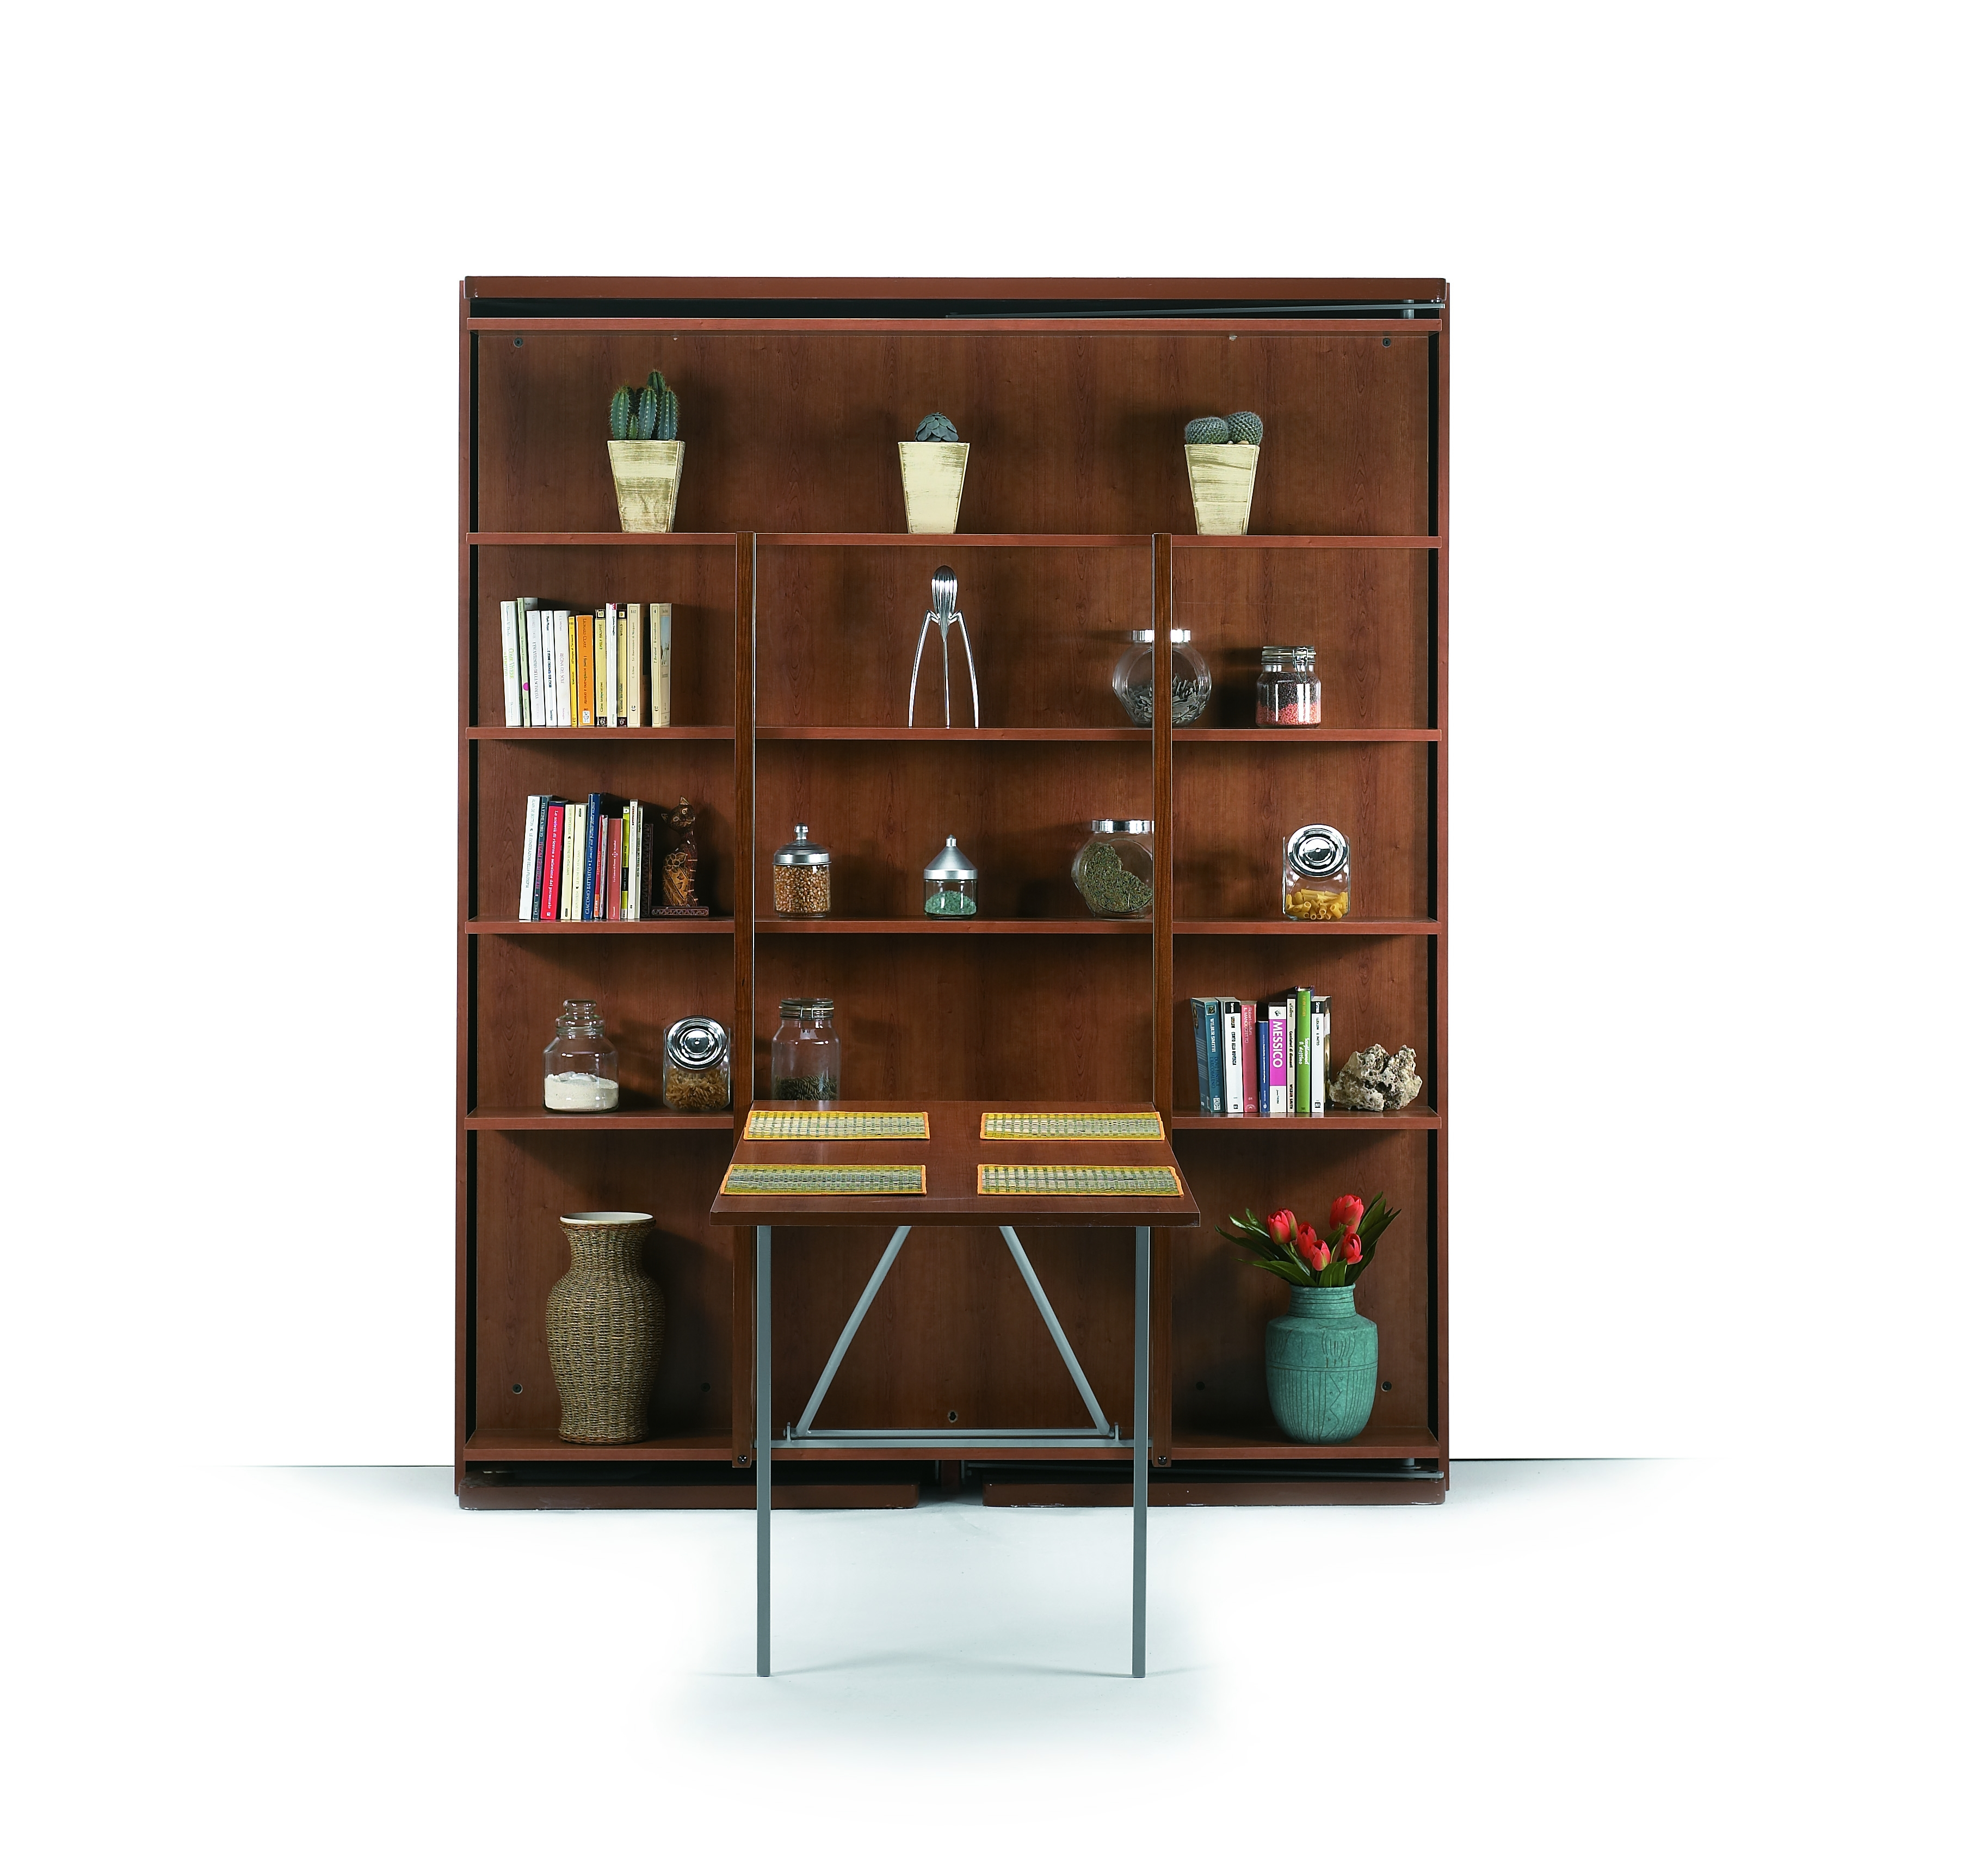 Bookcase Wall Beds Foldoutfurniture